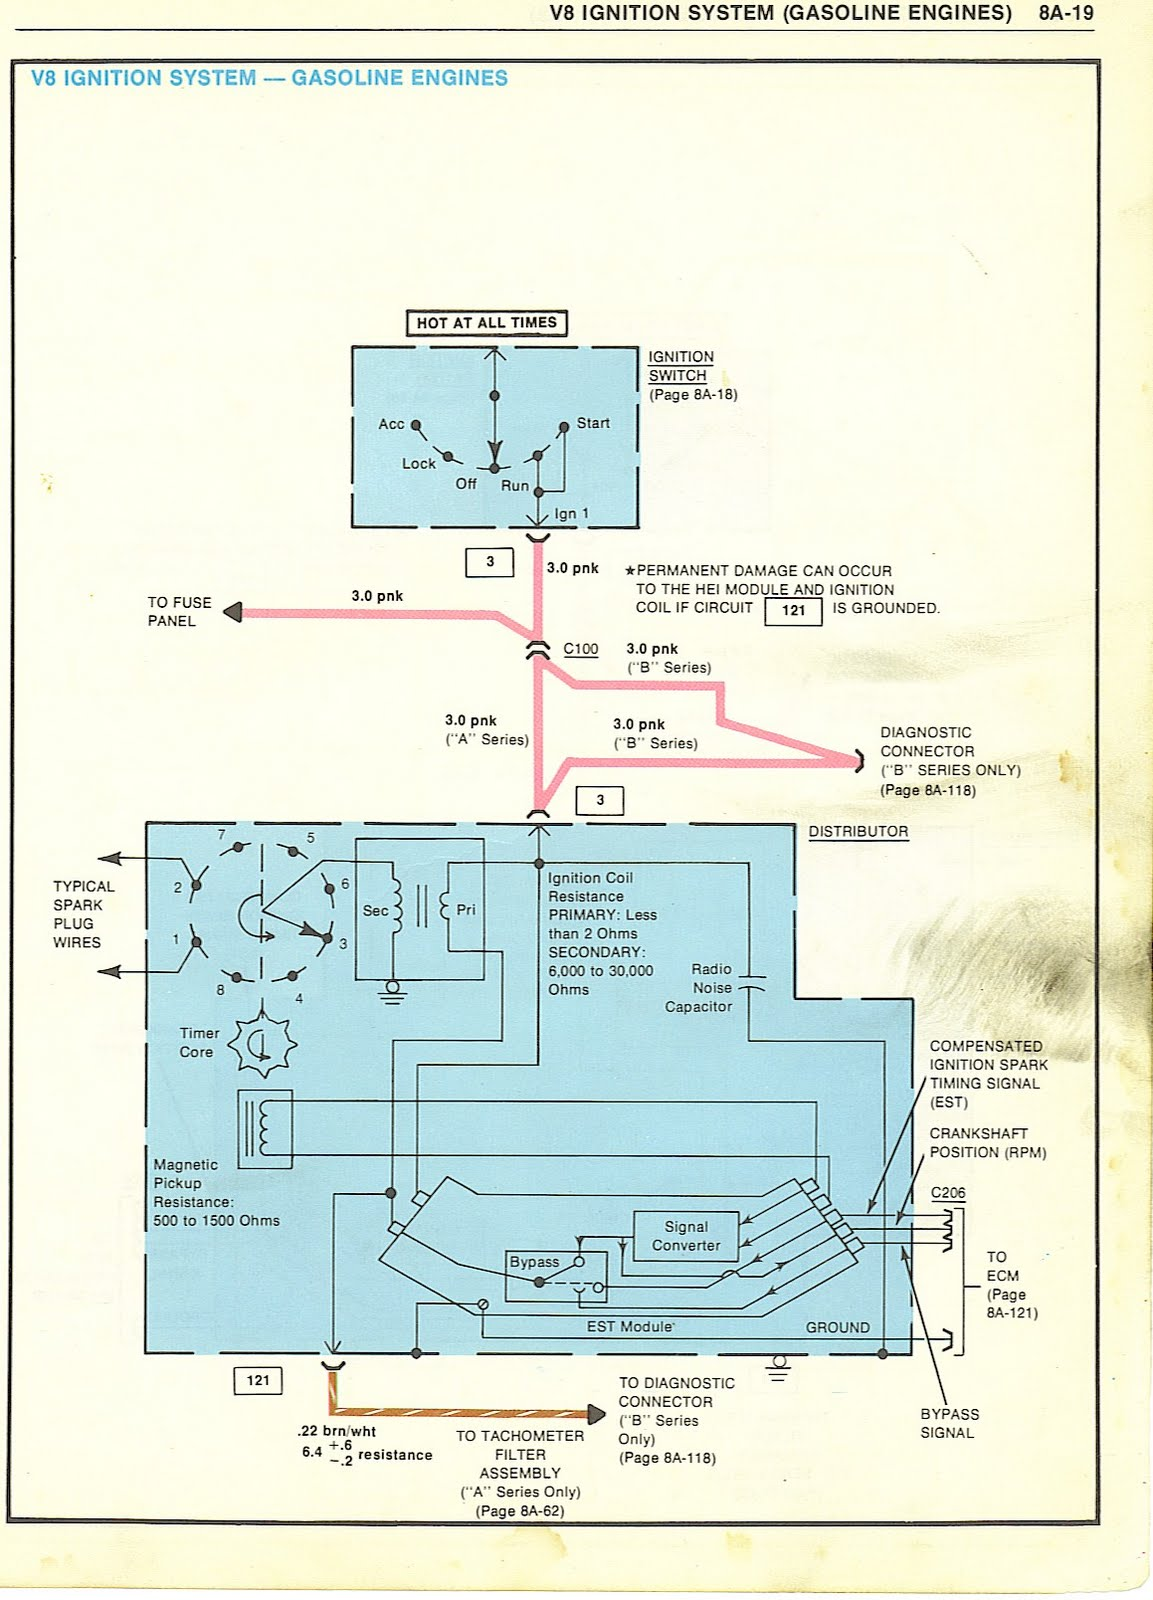 1979 malibu wiring schematics free auto wiring diagram: may 2011 #10